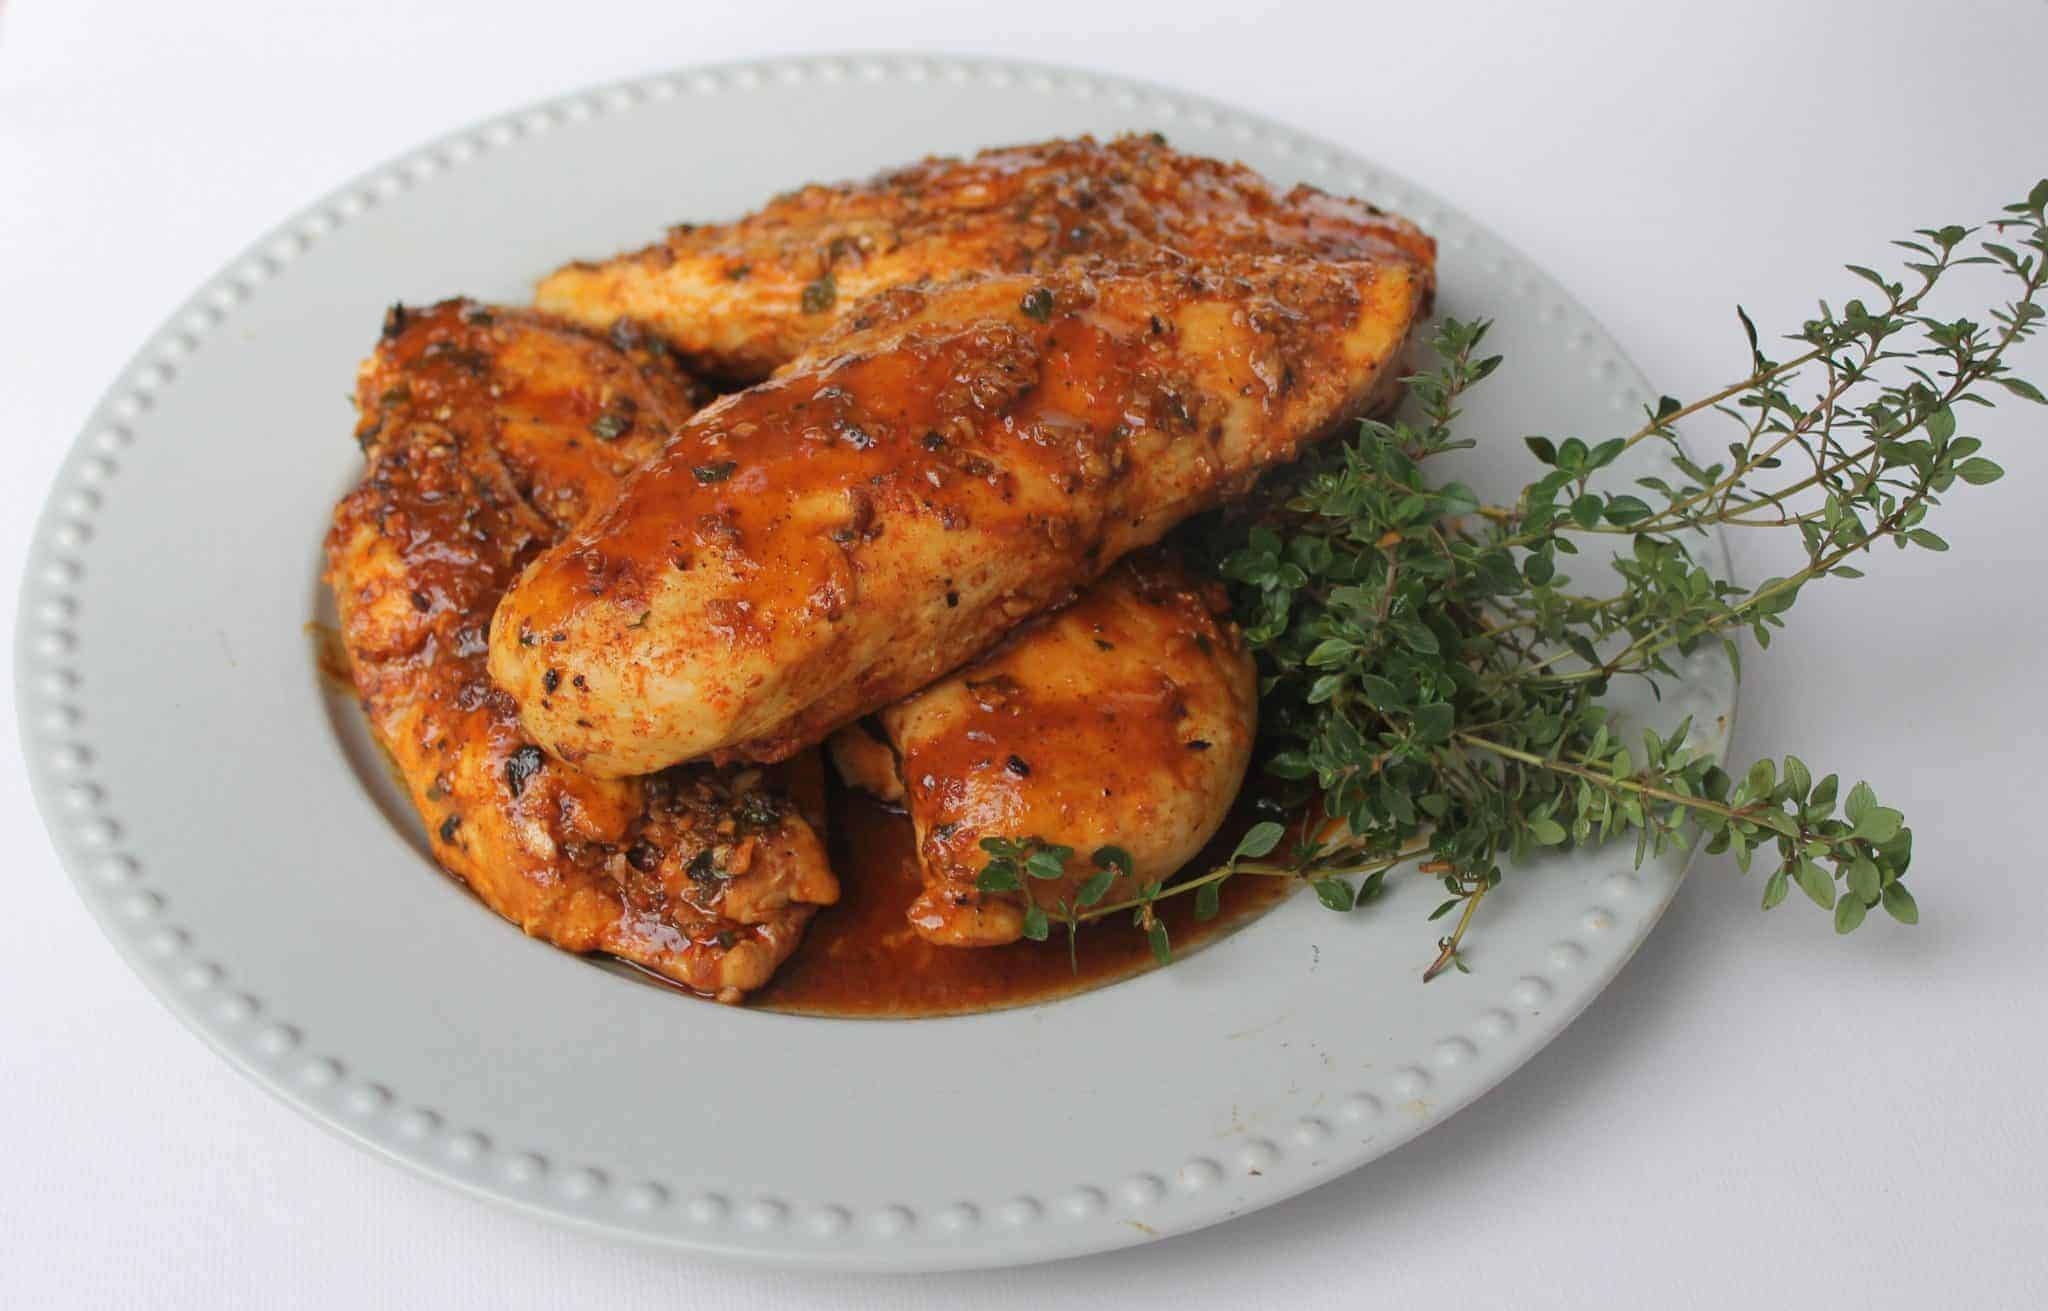 Garlic Chicken with Smokey Paprika